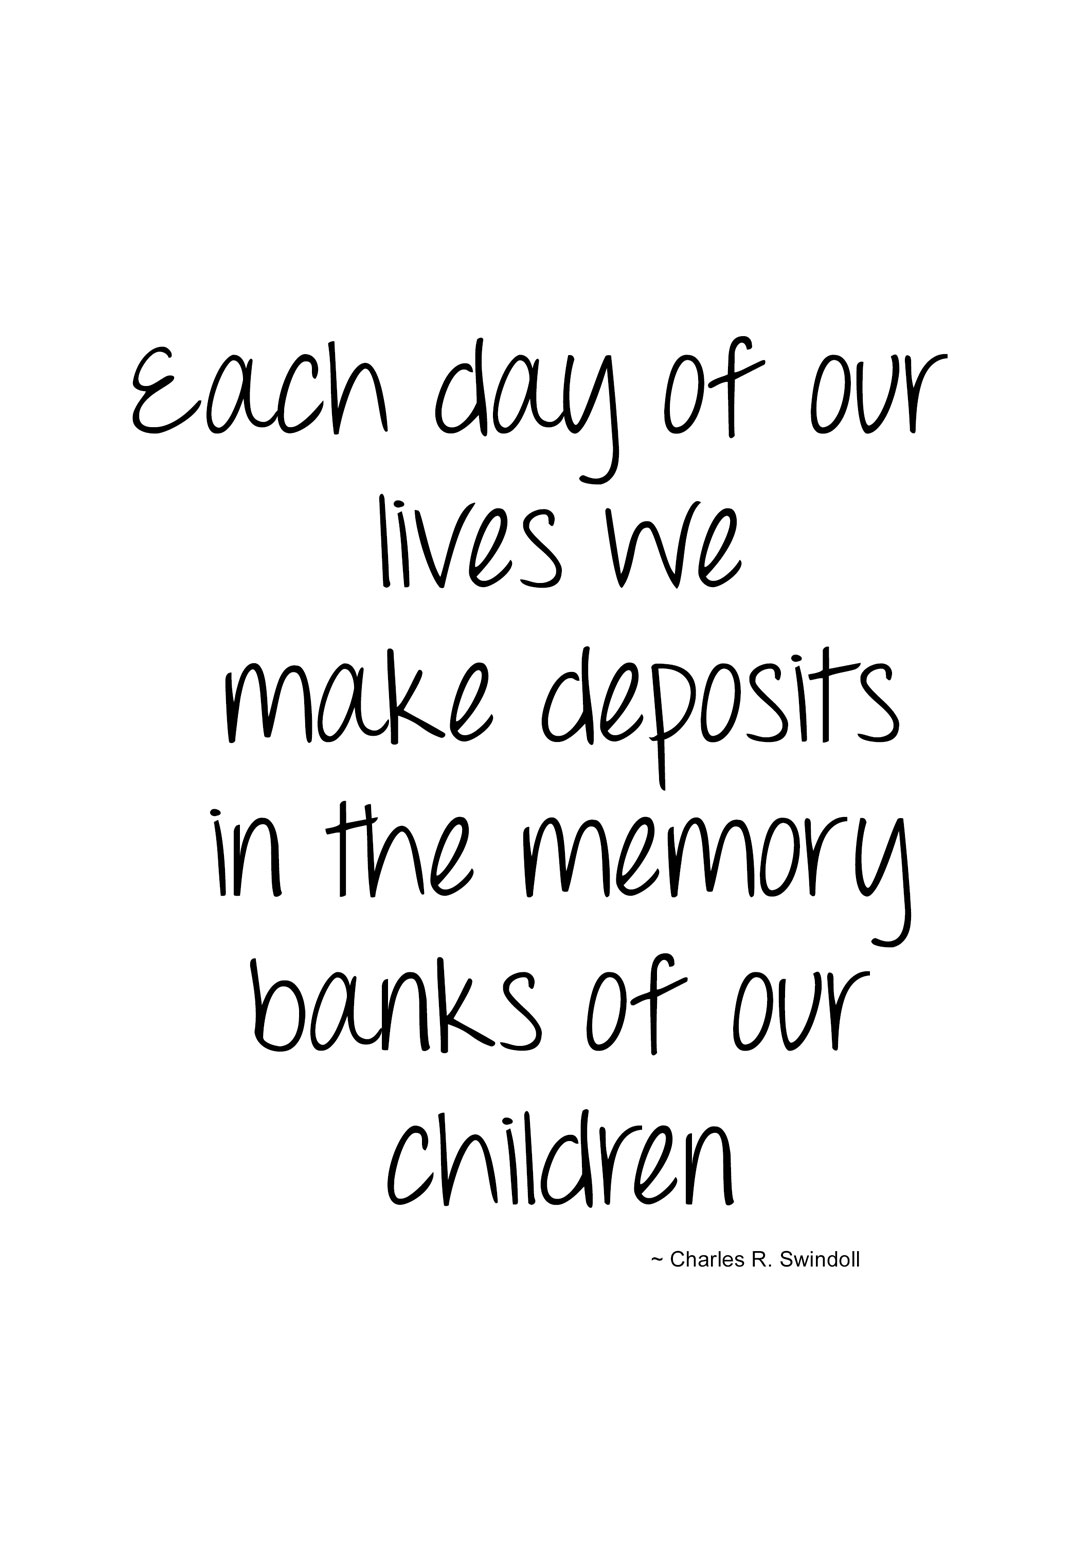 each day of our lives, we make deposits in the memory banks of our children